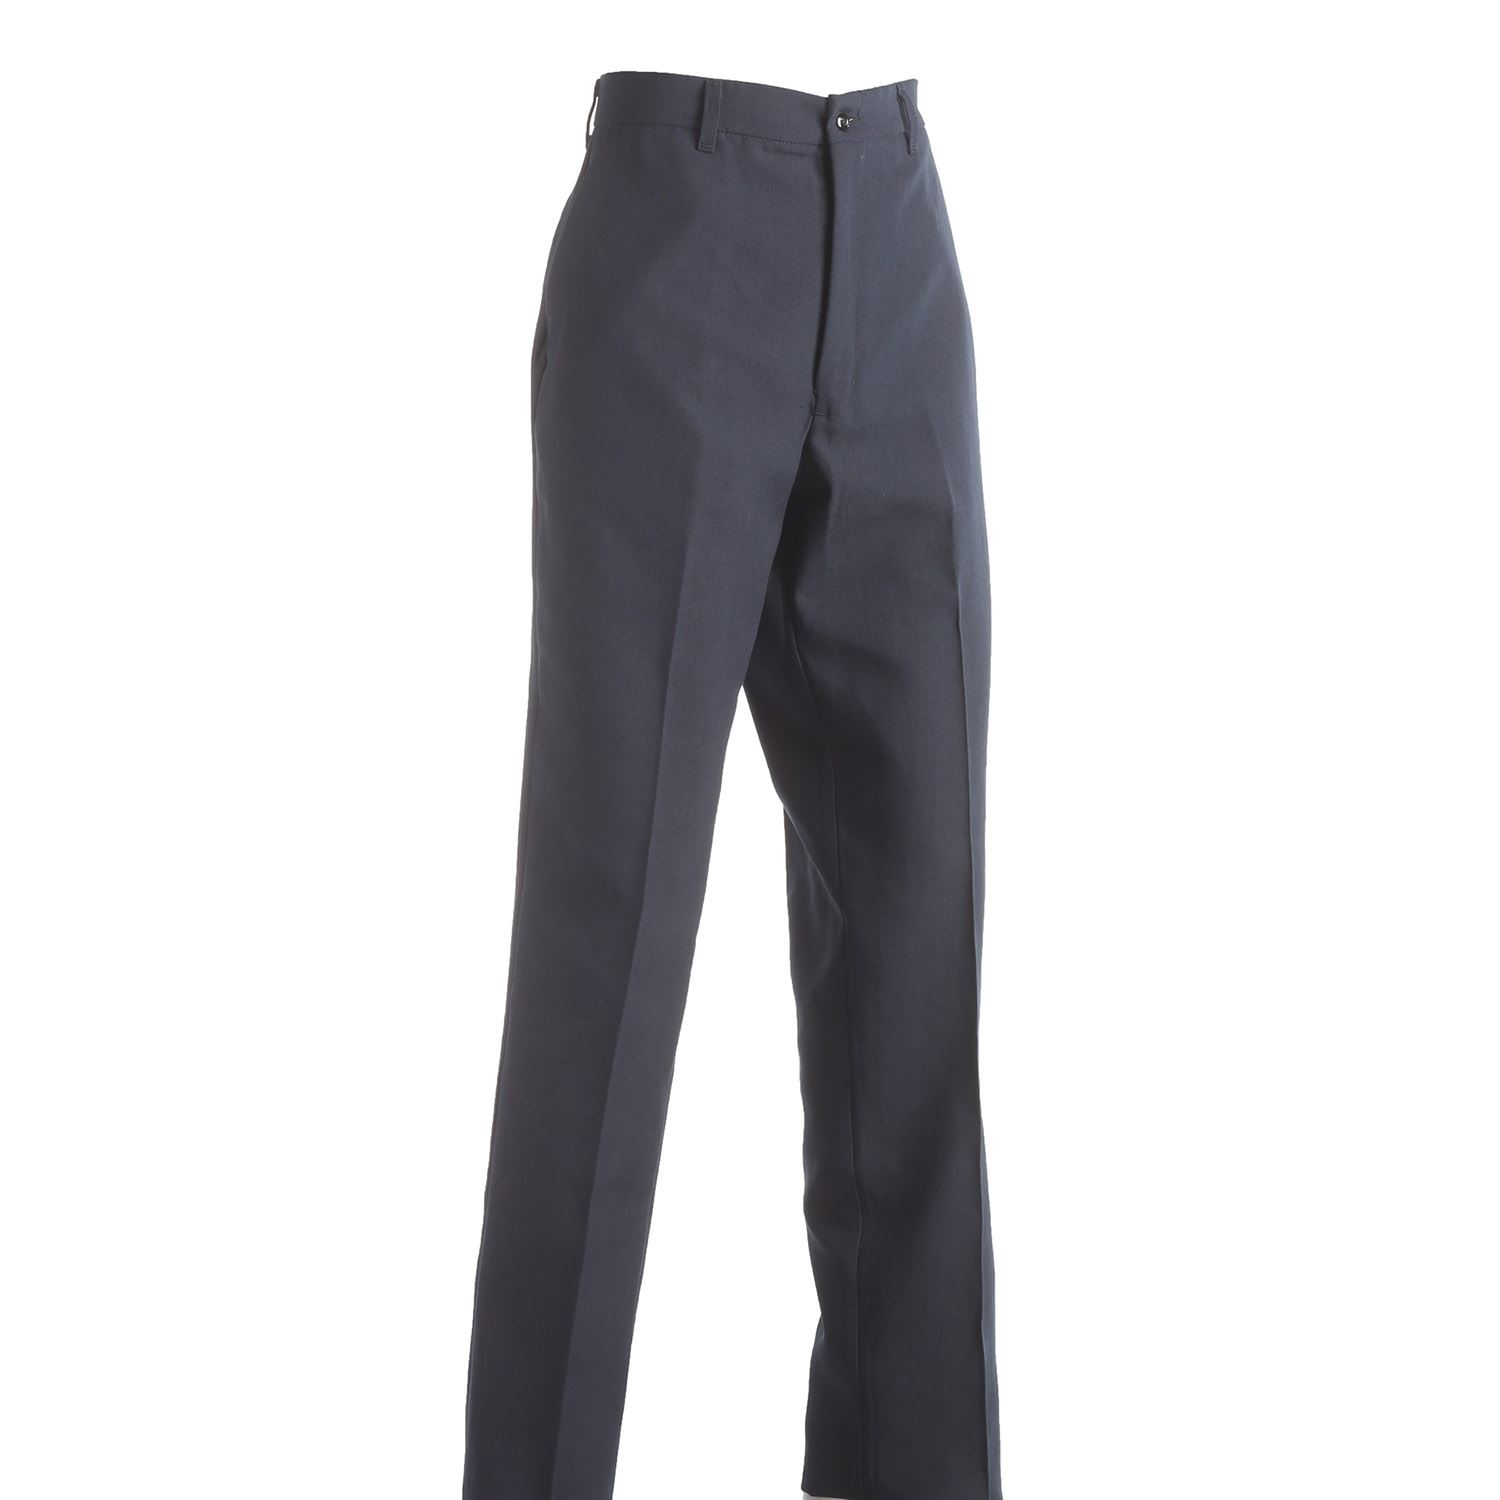 Bulwark Men's Nomex Work Pants